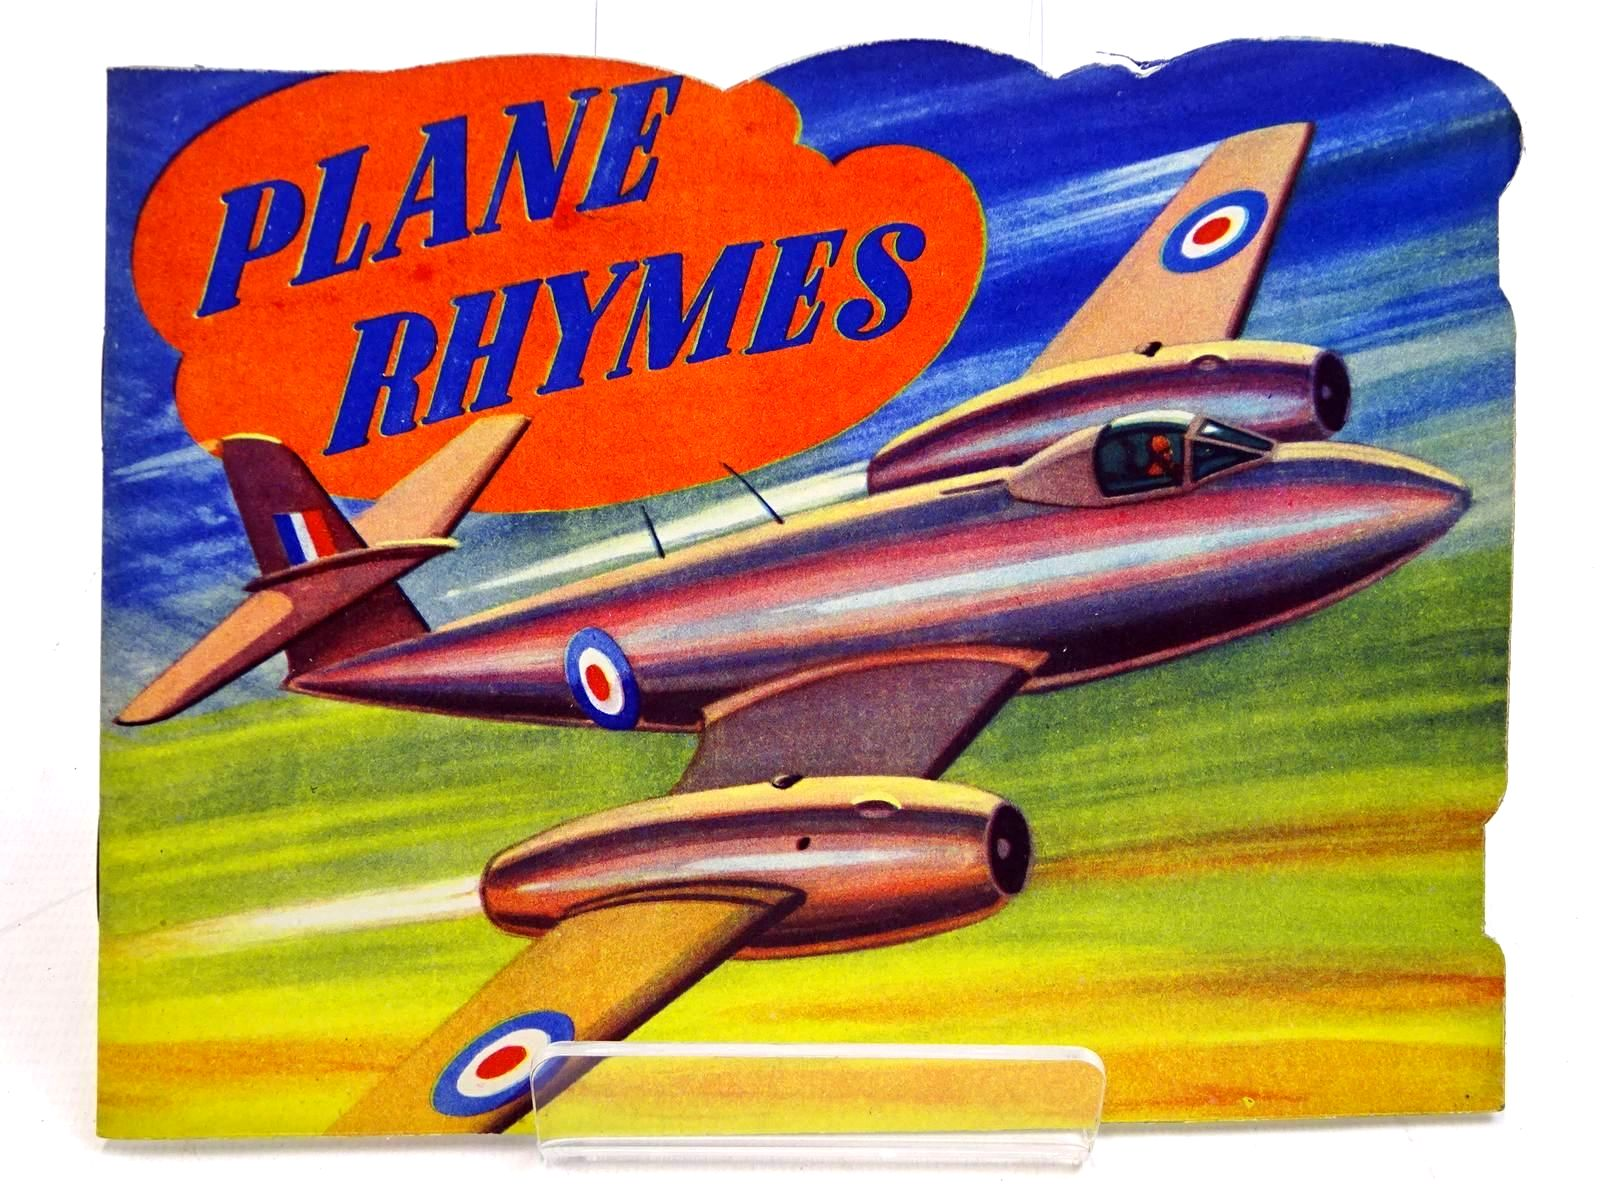 Photo of PLANE RHYMES published by Birn Brothers Ltd. (STOCK CODE: 2131566)  for sale by Stella & Rose's Books